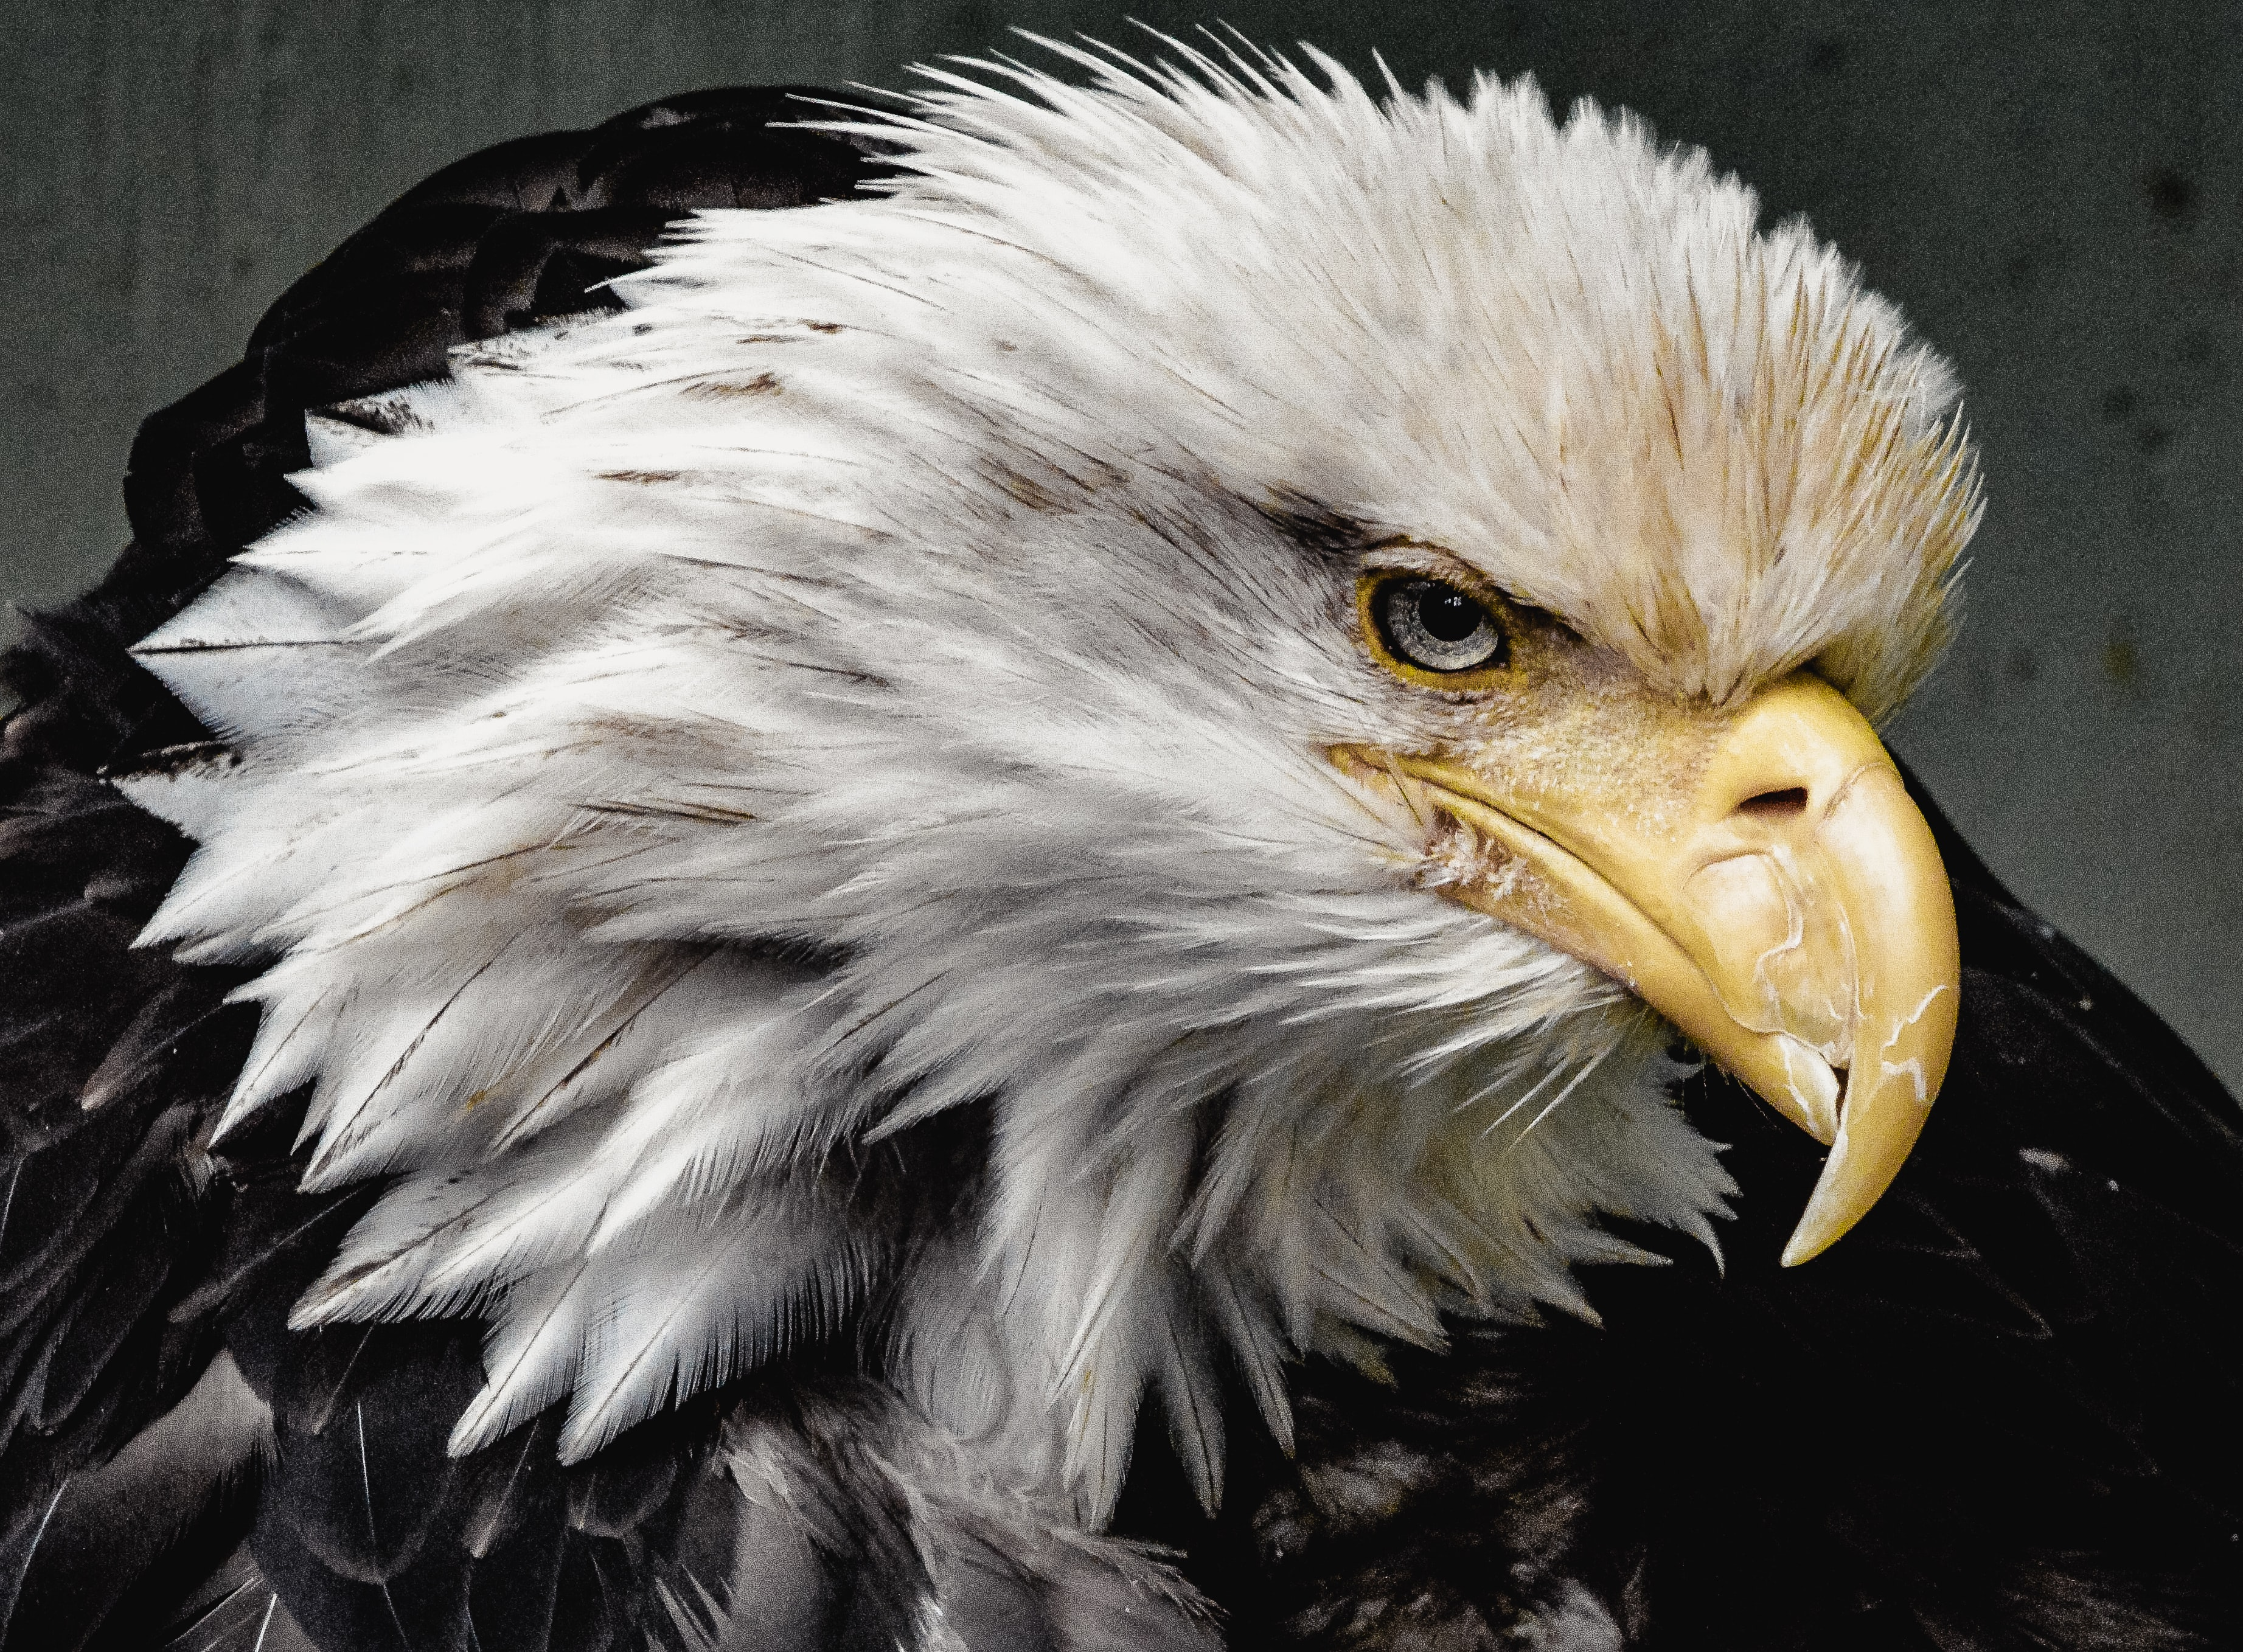 An eagle with white feathered head turning to one side